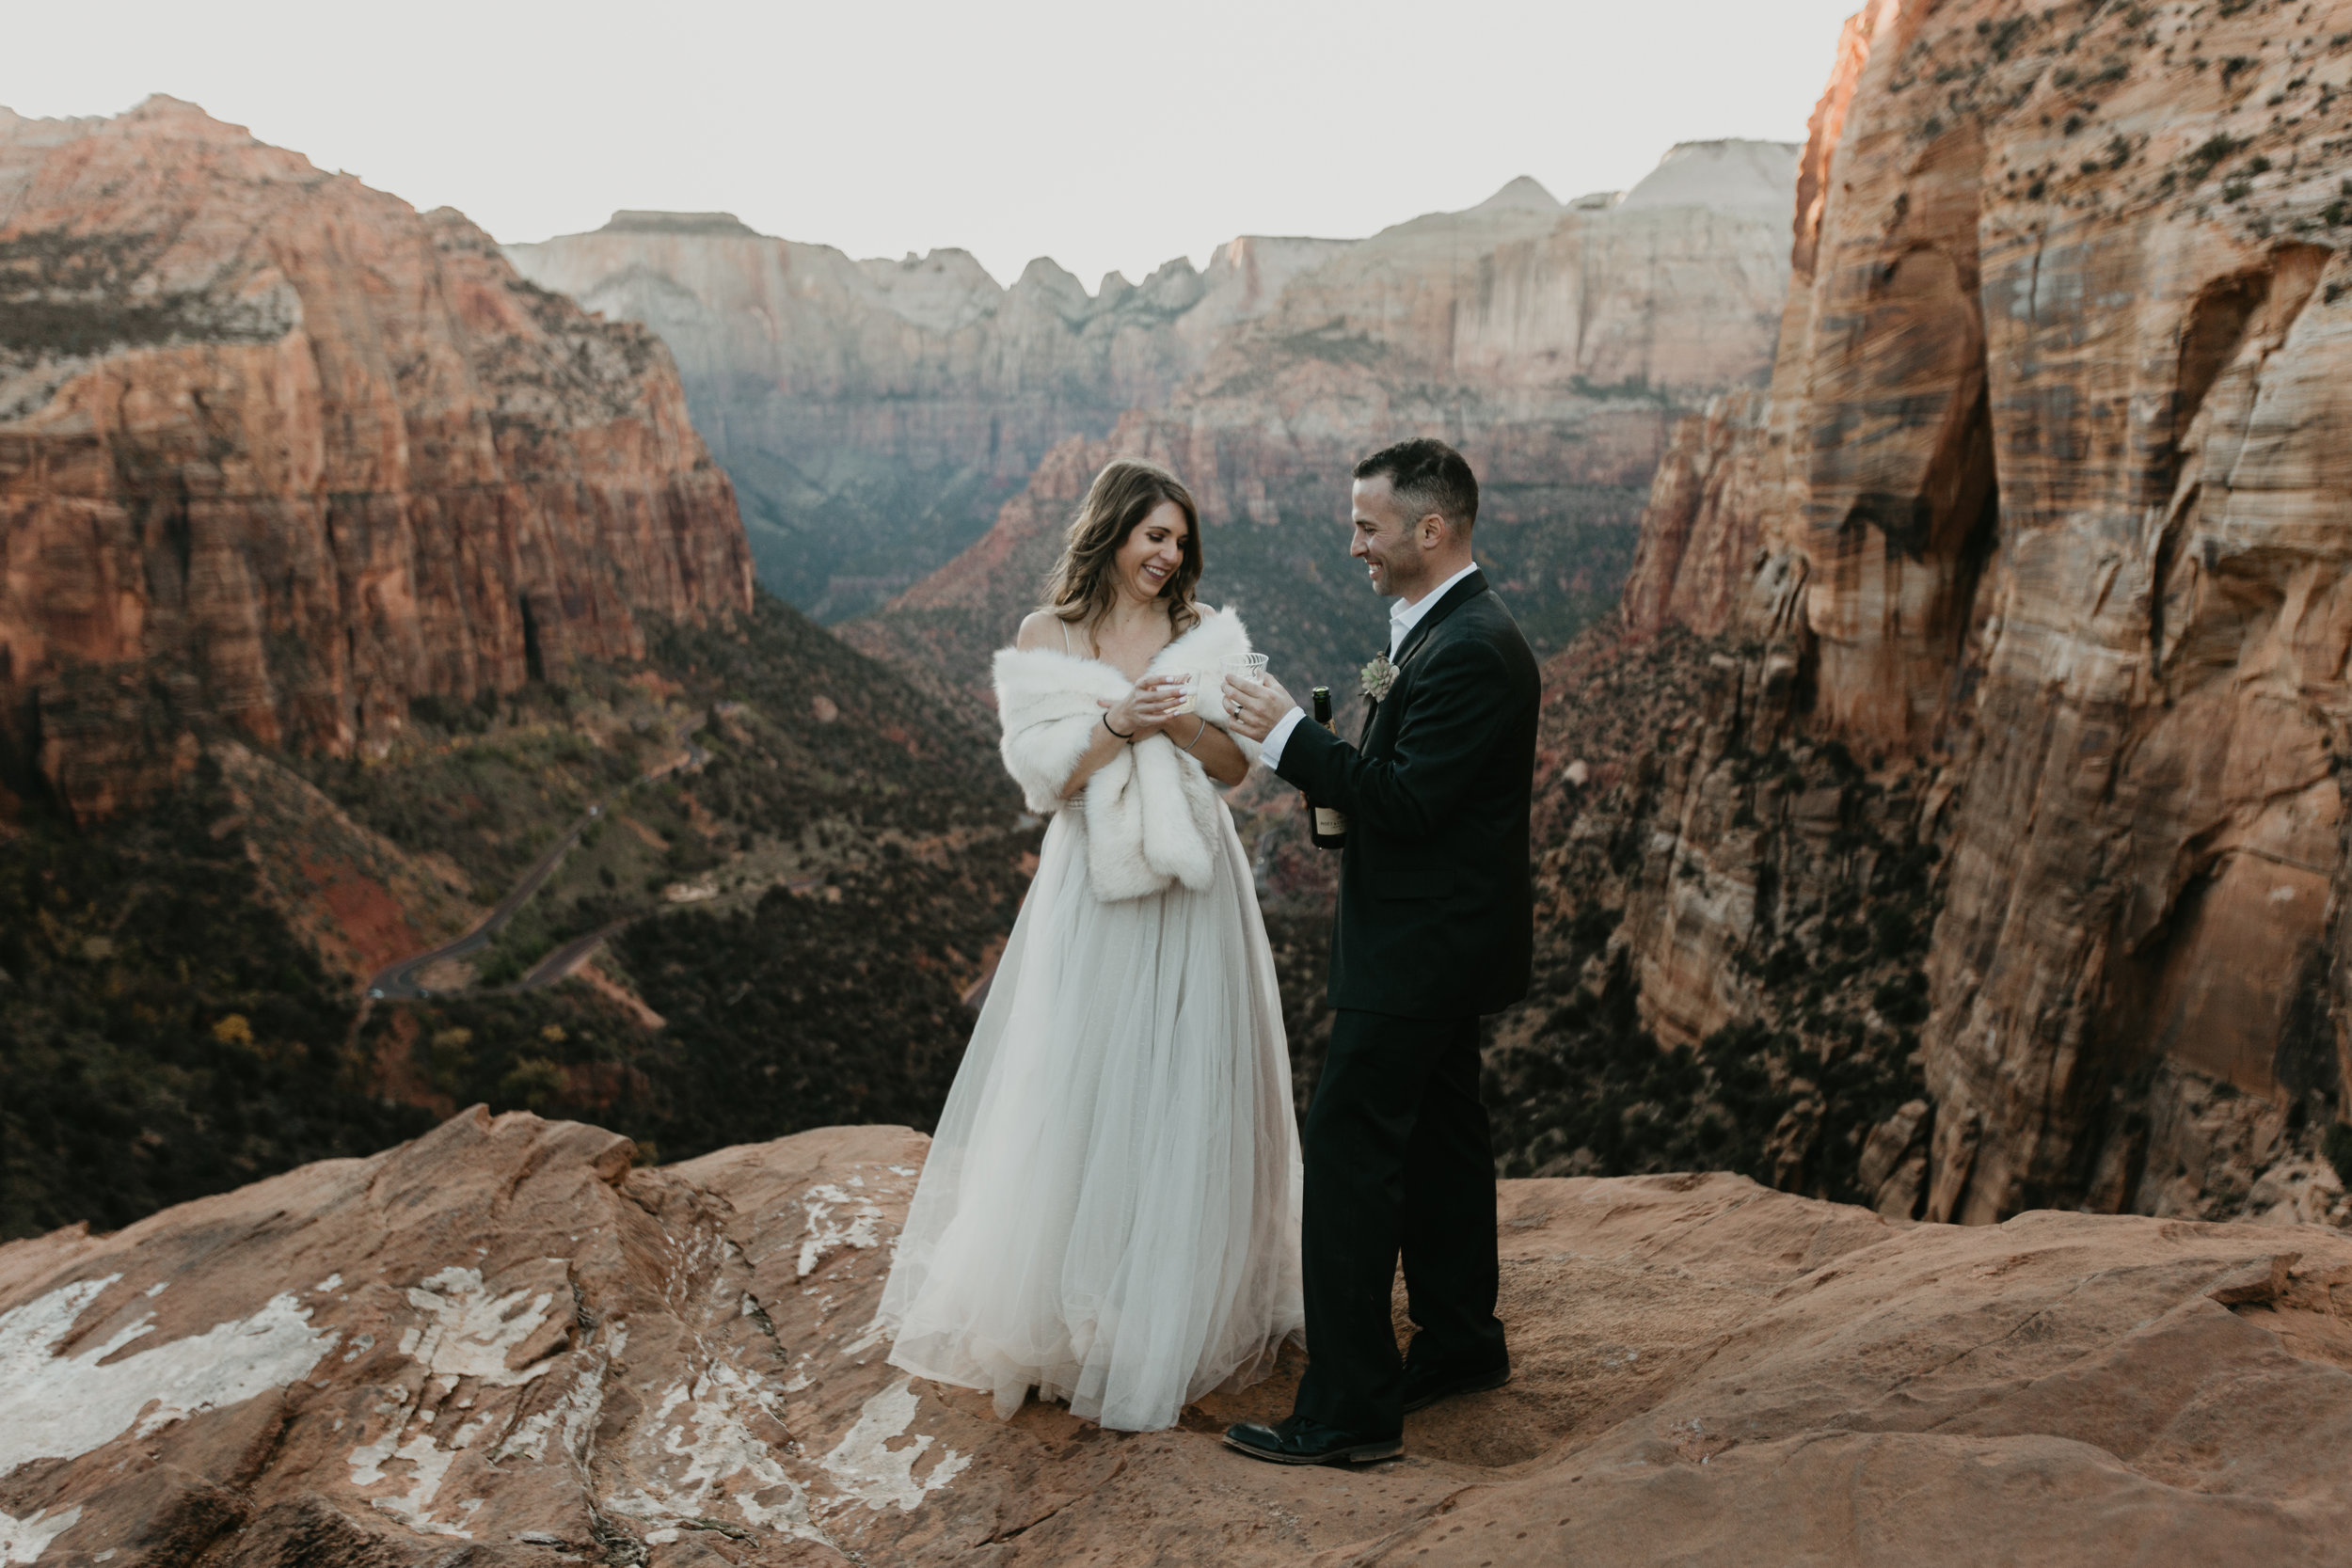 nicole-daacke-photography-zion-national-park-elopement-photographer-canyon-overlook-trail-elope-hiking-adventure-wedding-photos-fall-utah-red-rock-canyon-stgeorge-eloping-photographer-65.jpg